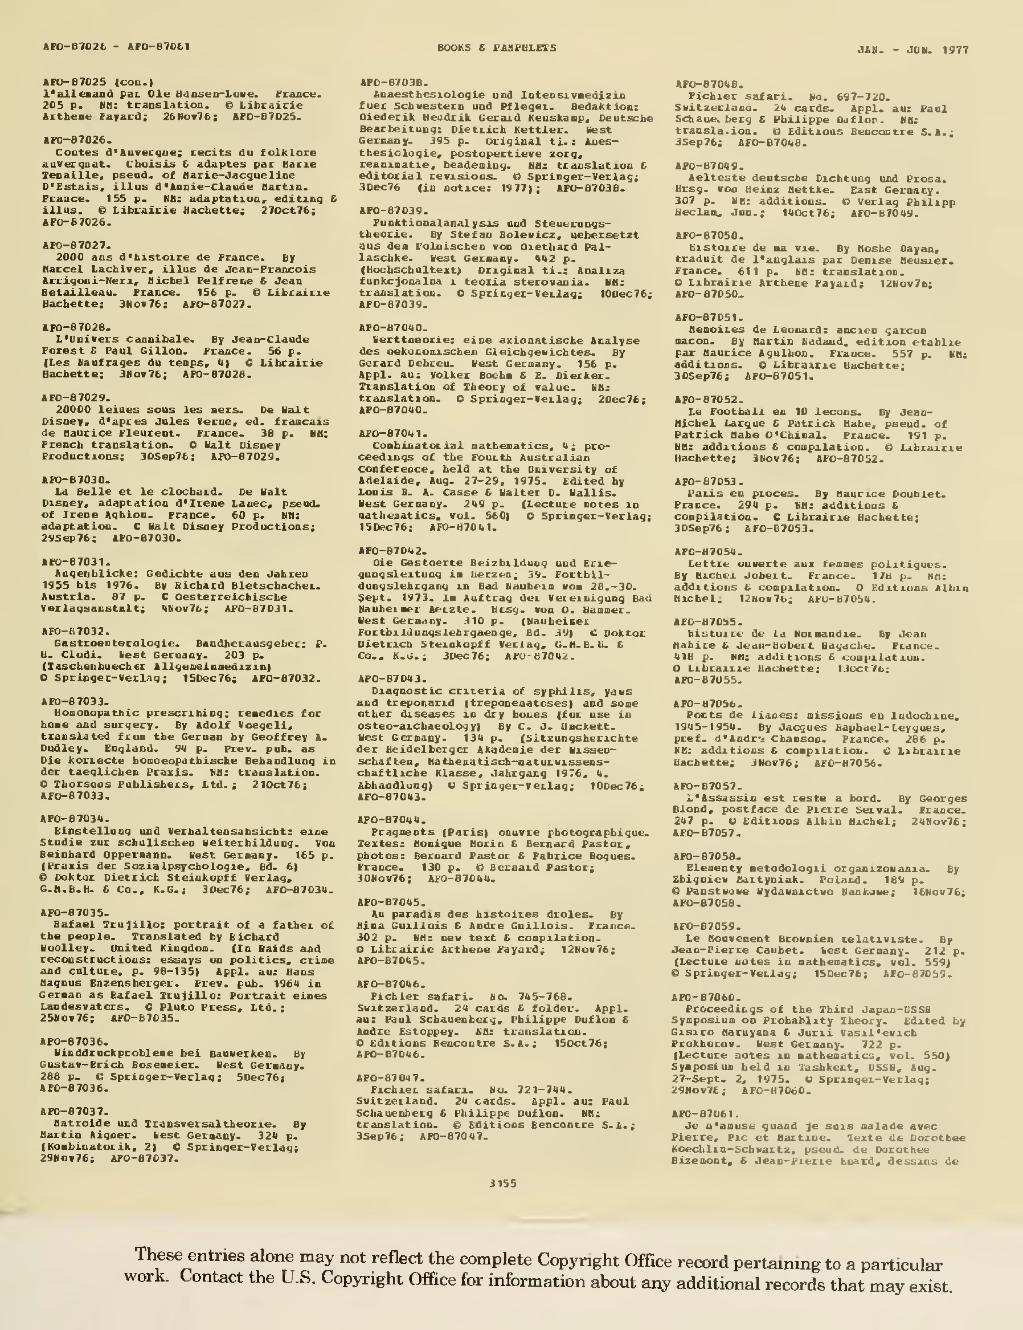 Pagecatalog Of Copyright Entries 1977 Books And Pamphlets